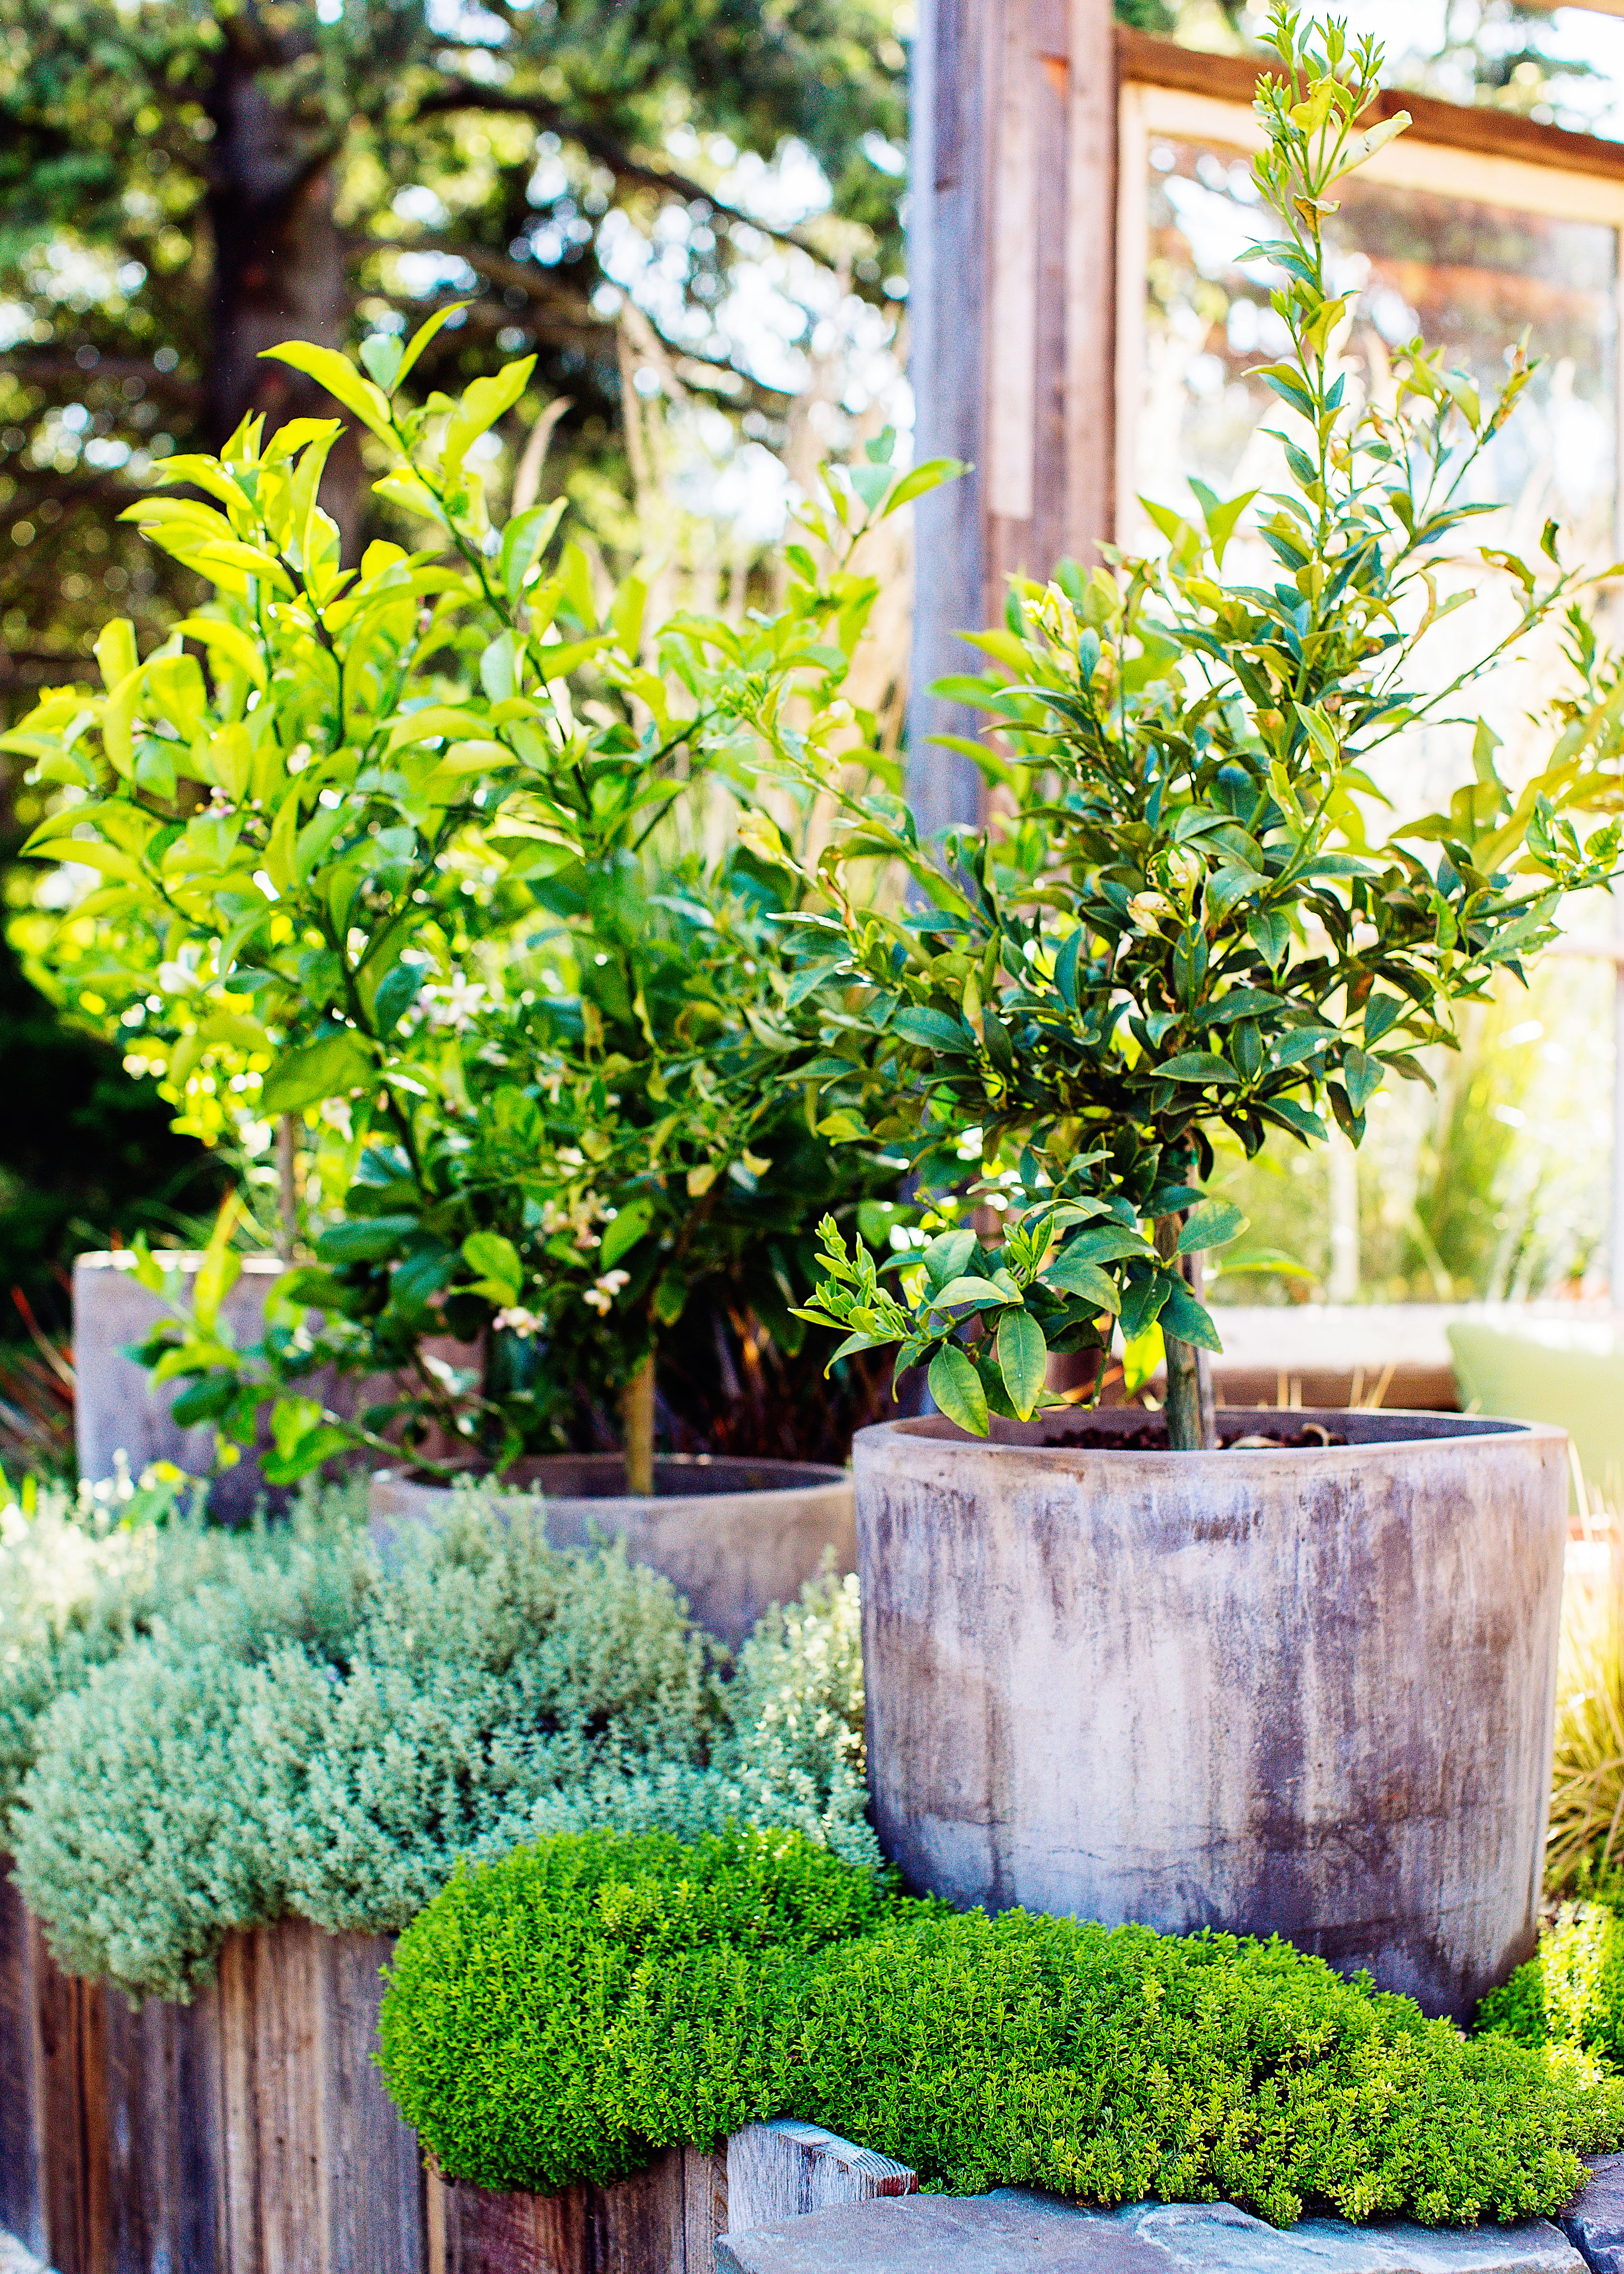 How to Repot a Citrus Tree